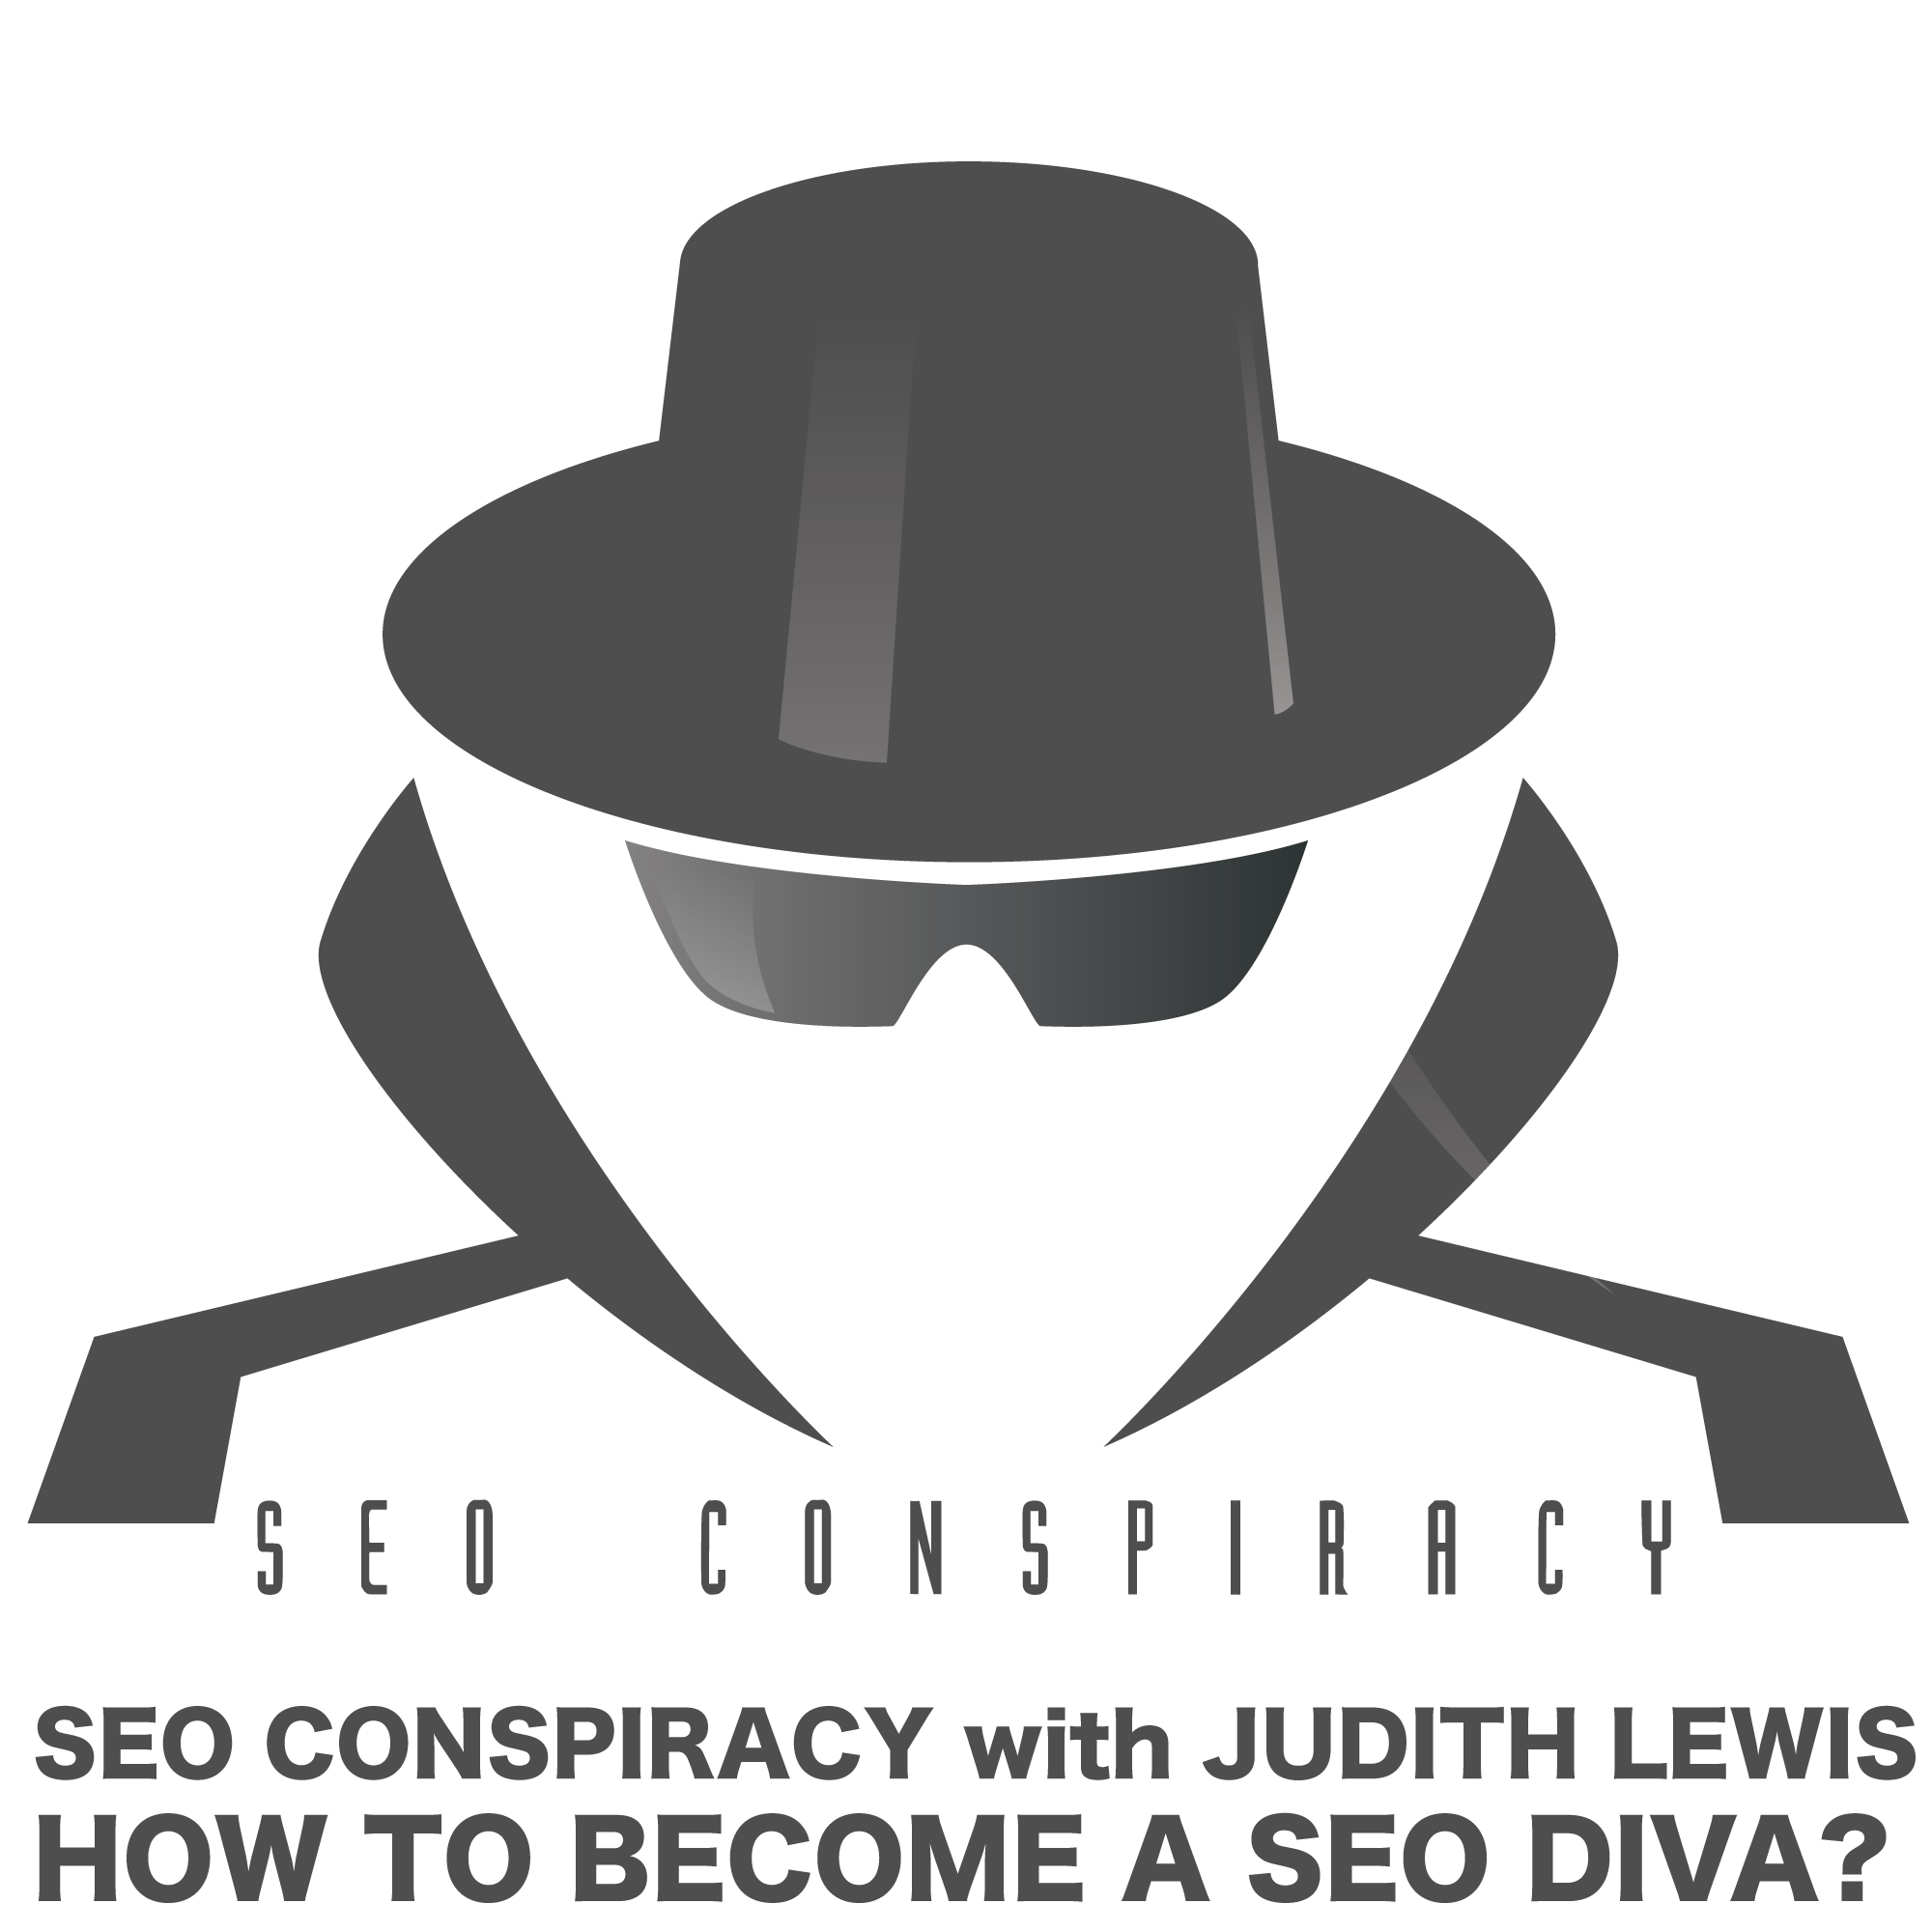 HOW TO BECOME A SEO DIVA WITH JUDITH LEWIS - SEO Conspiracy Special Edition #3